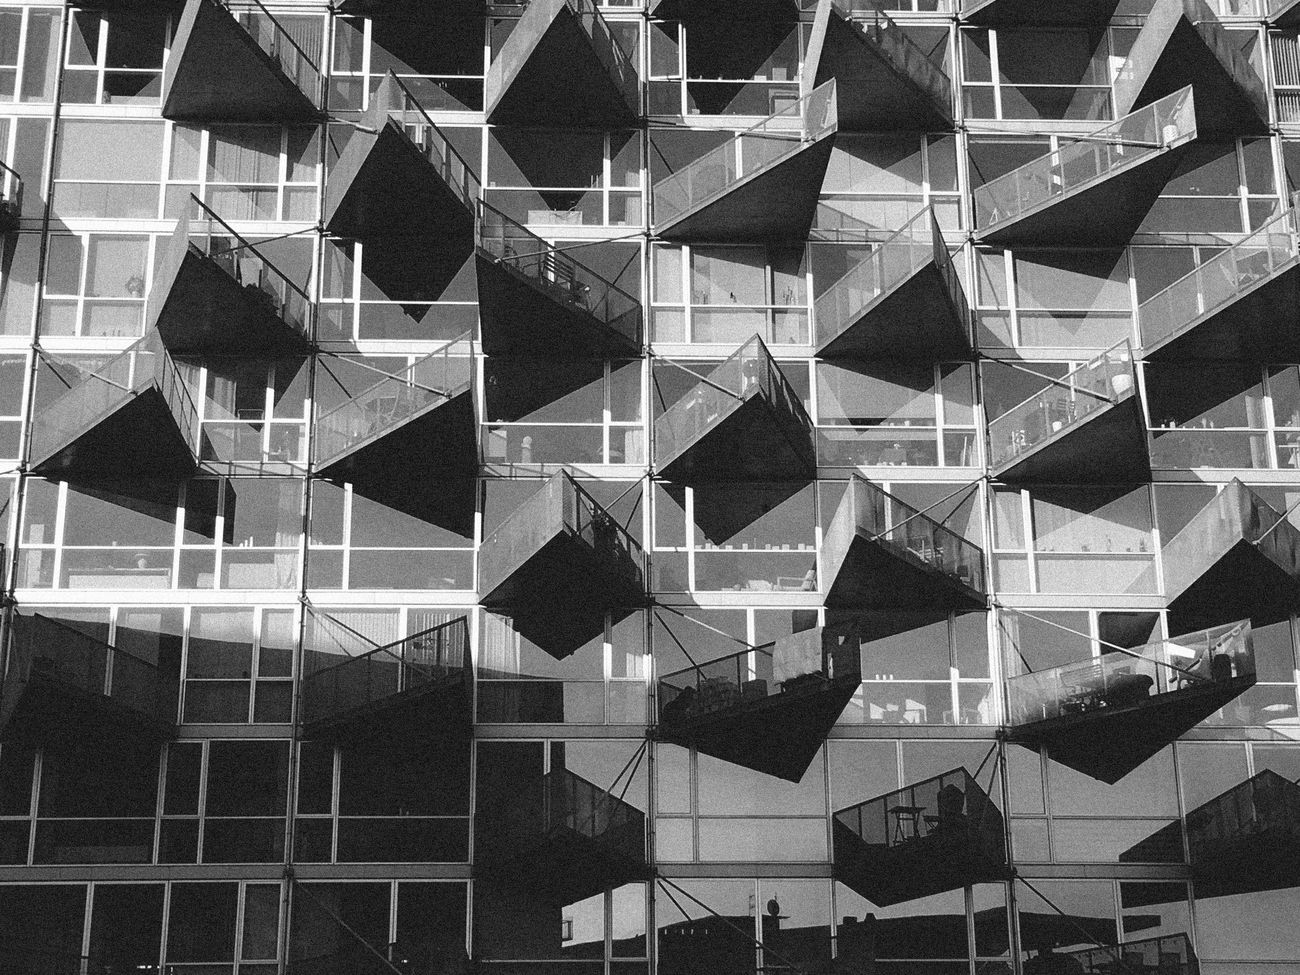 Architecture Architecture Building Exterior Built Structure Day Facade Building Façade Geometric Shape Outdoors Pattern The Architect - 2017 EyeEm Awards